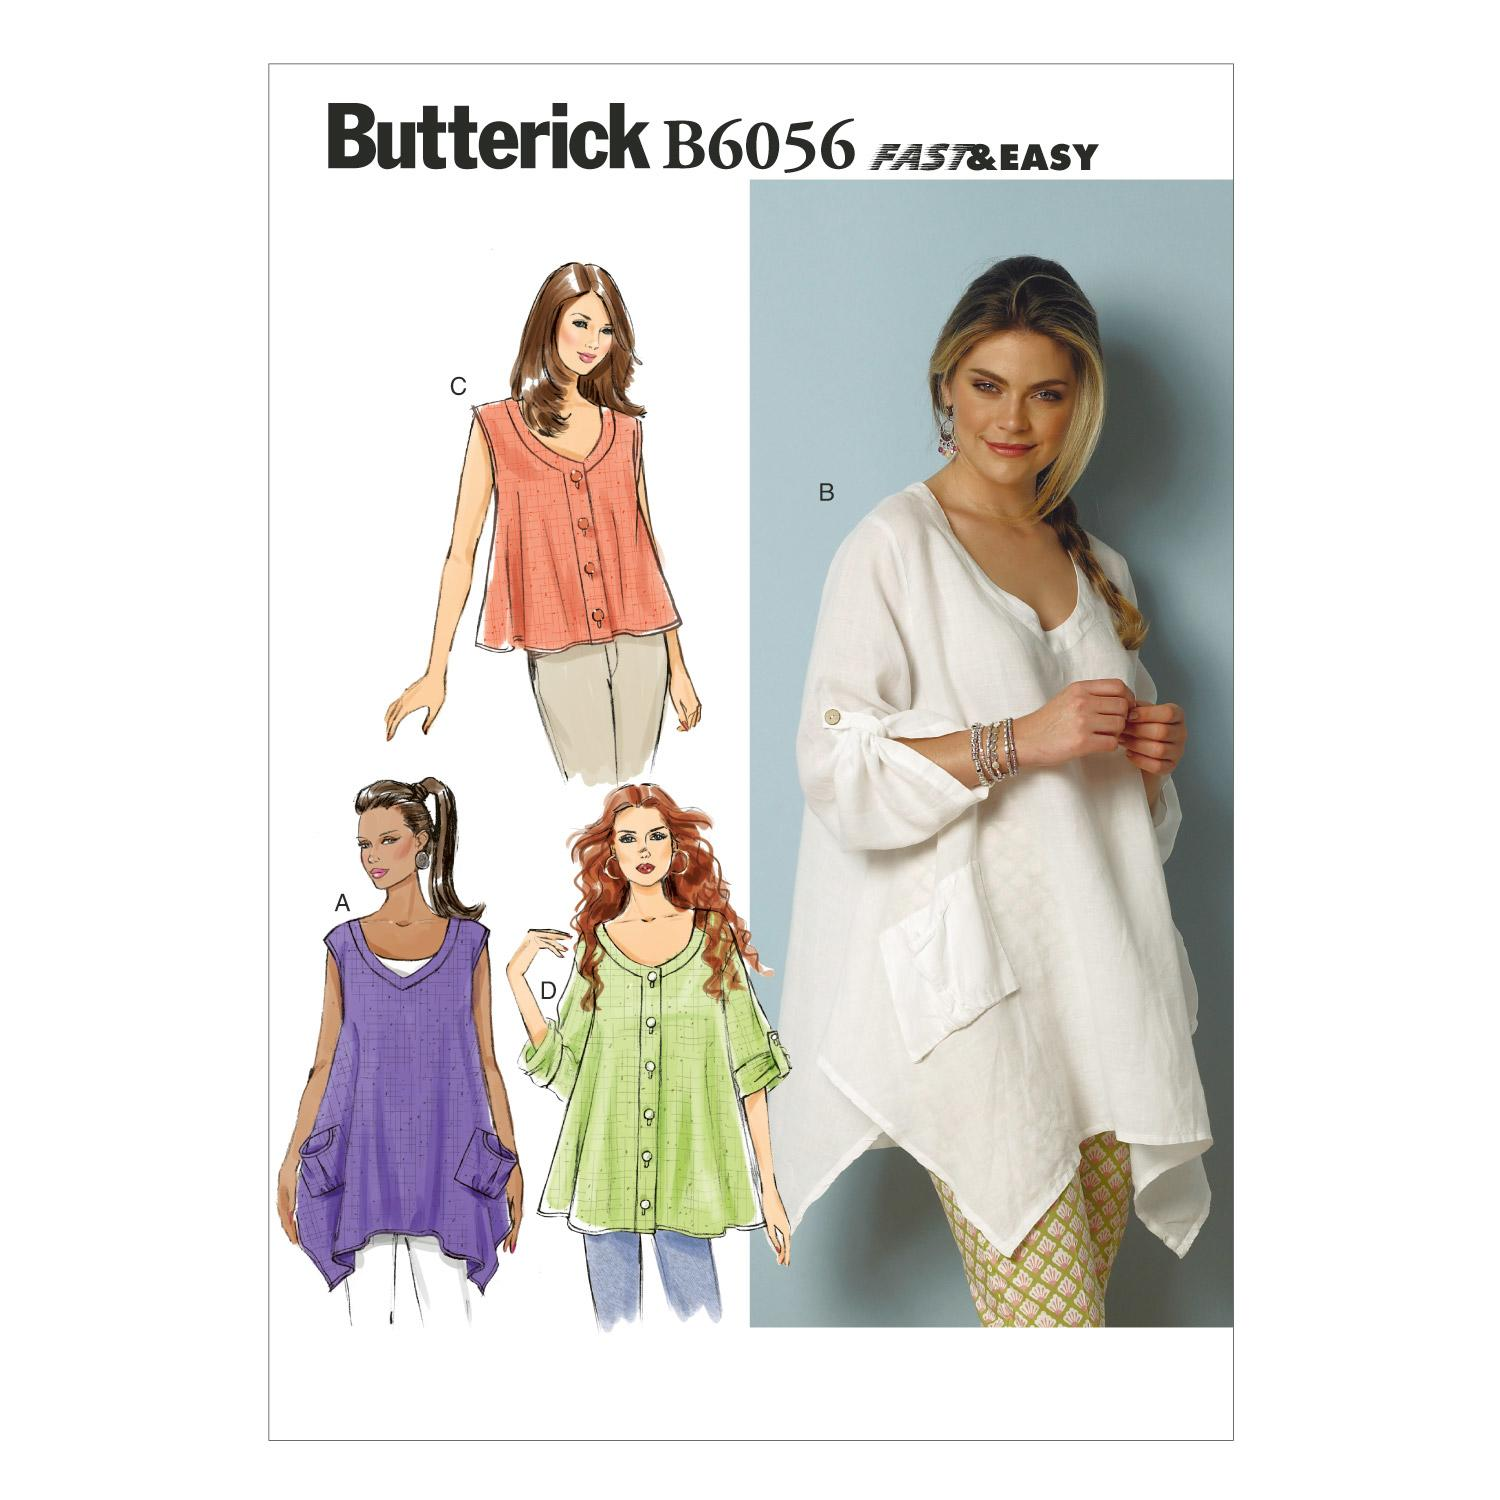 Butterick B6056 Misses' Top